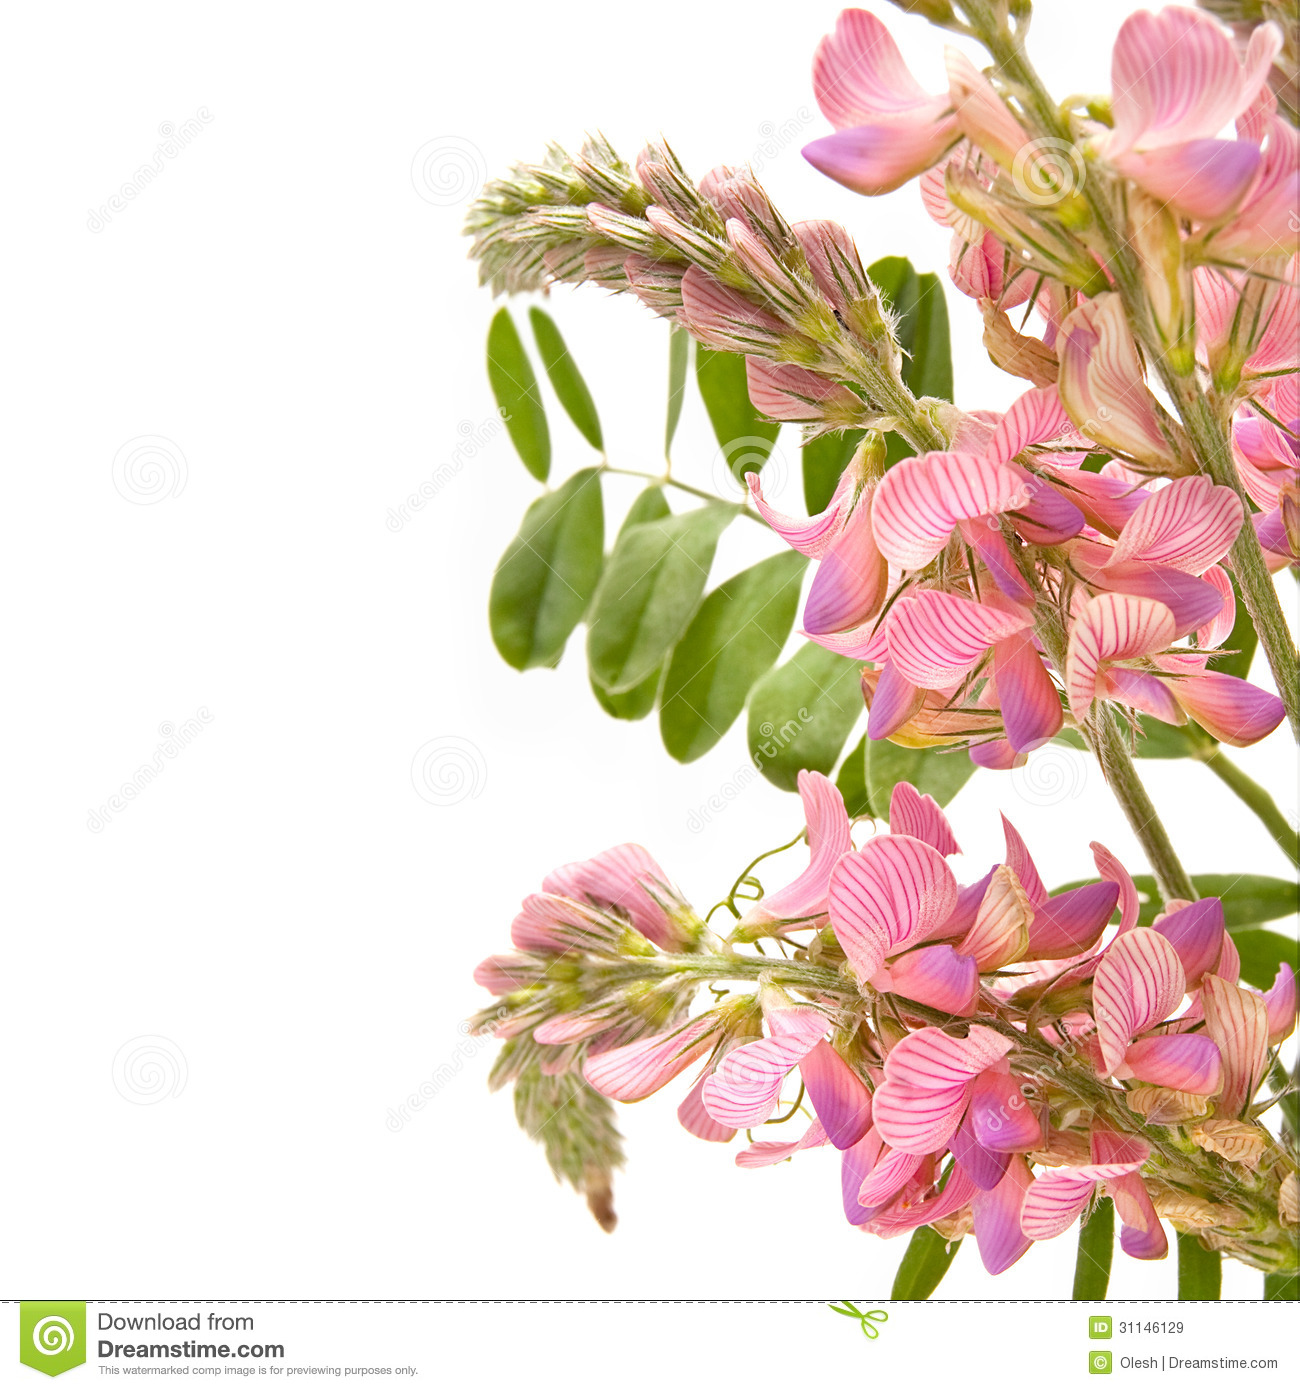 Sainfoin Flowers Royalty Free Stock Images.